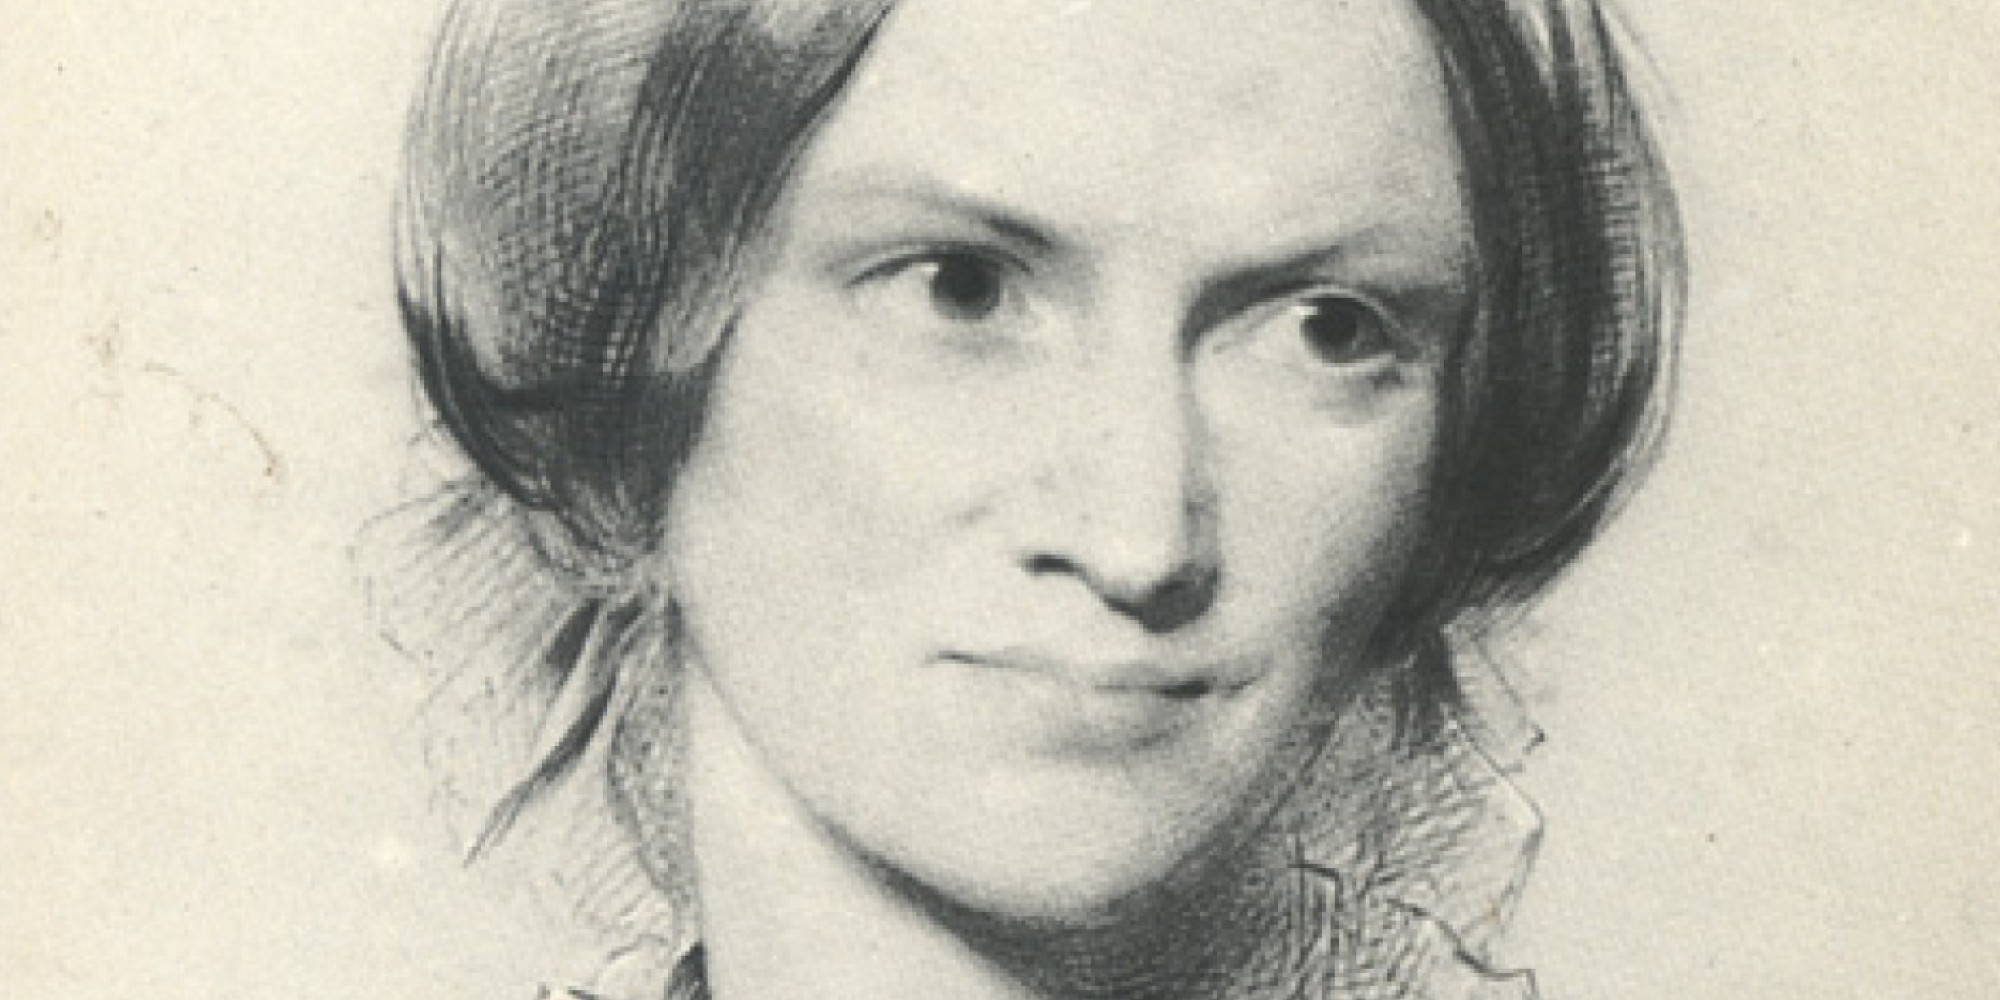 female oppression in jane eyre Jane eyre is, pretty indisputably, charlotte bronte's most popular novel  and  make-up, viewing these as objects of patriarchal oppression.